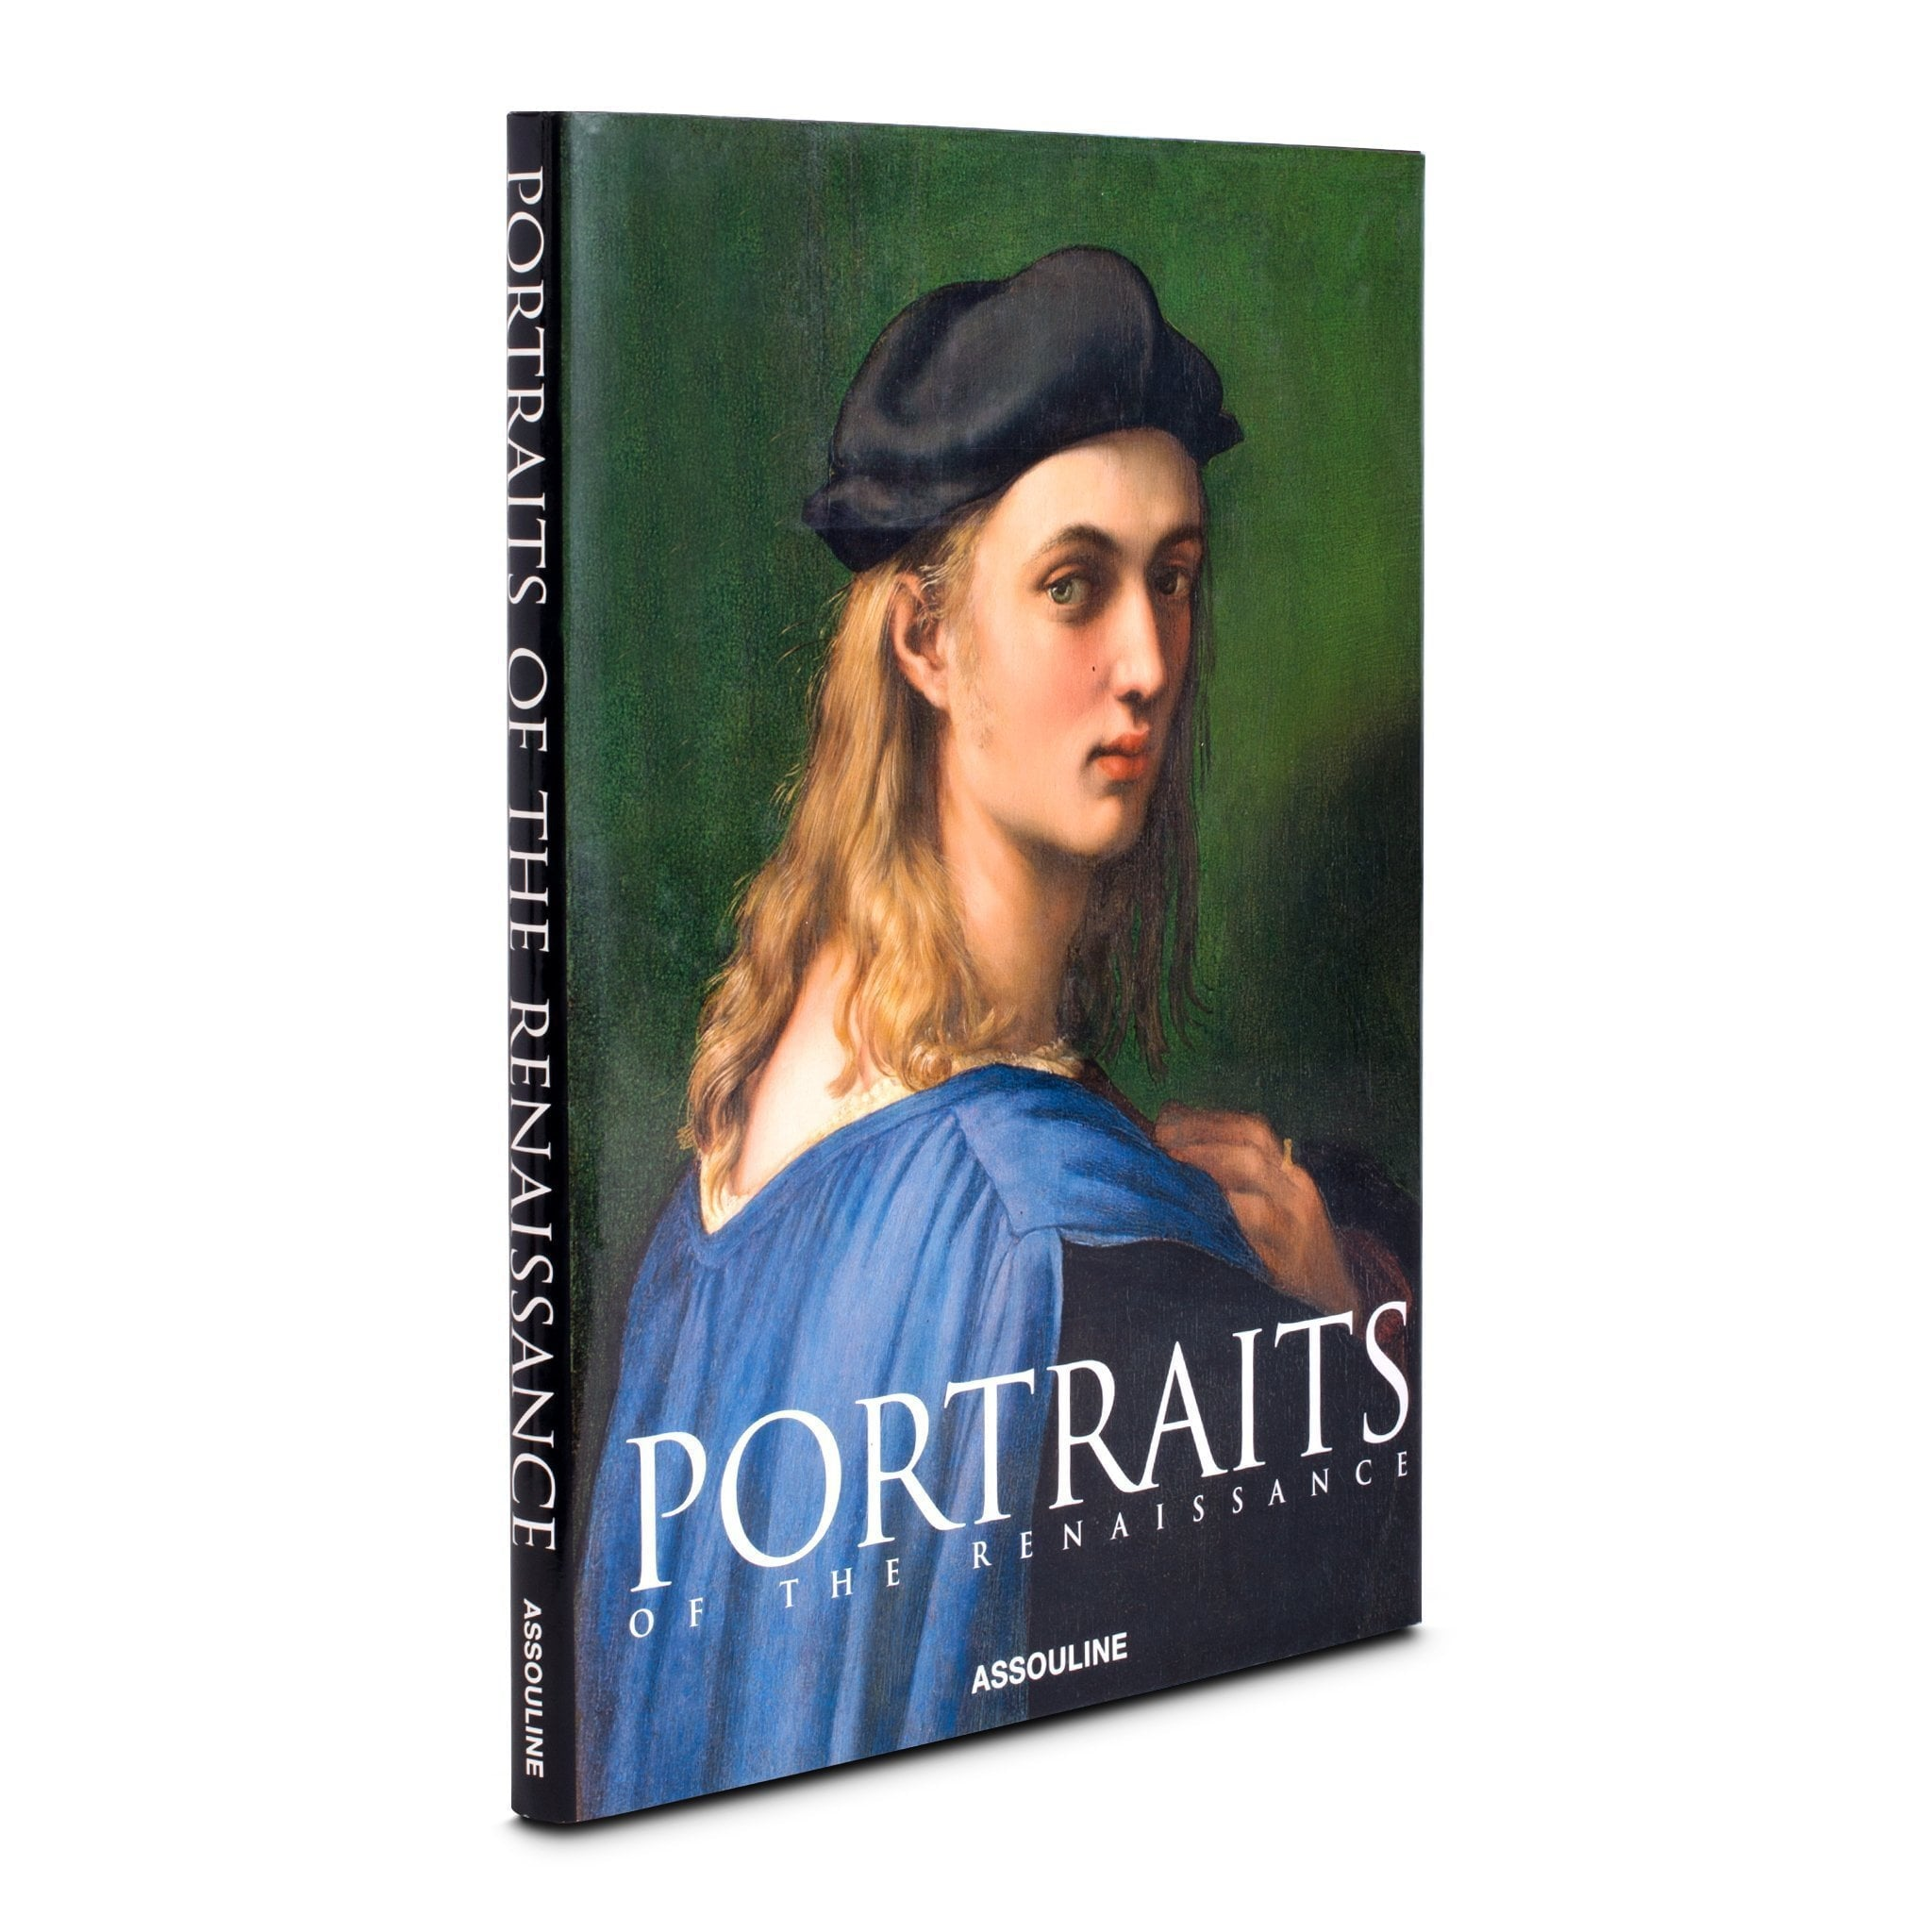 Portraits of the Renaissance - Assouline